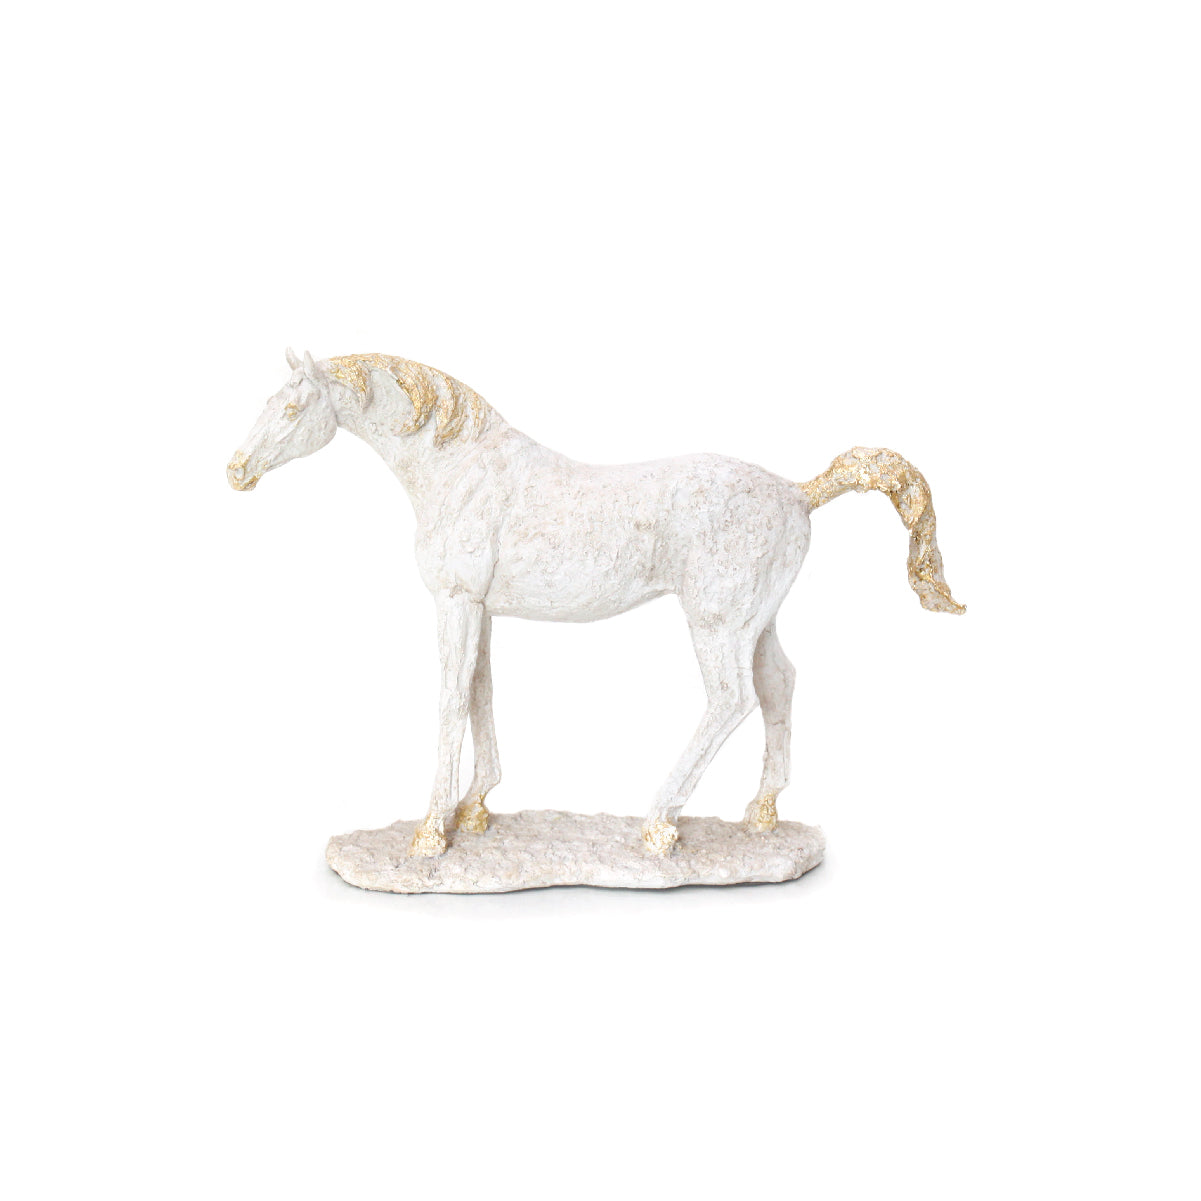 white and gold standing horse figurine home accessory